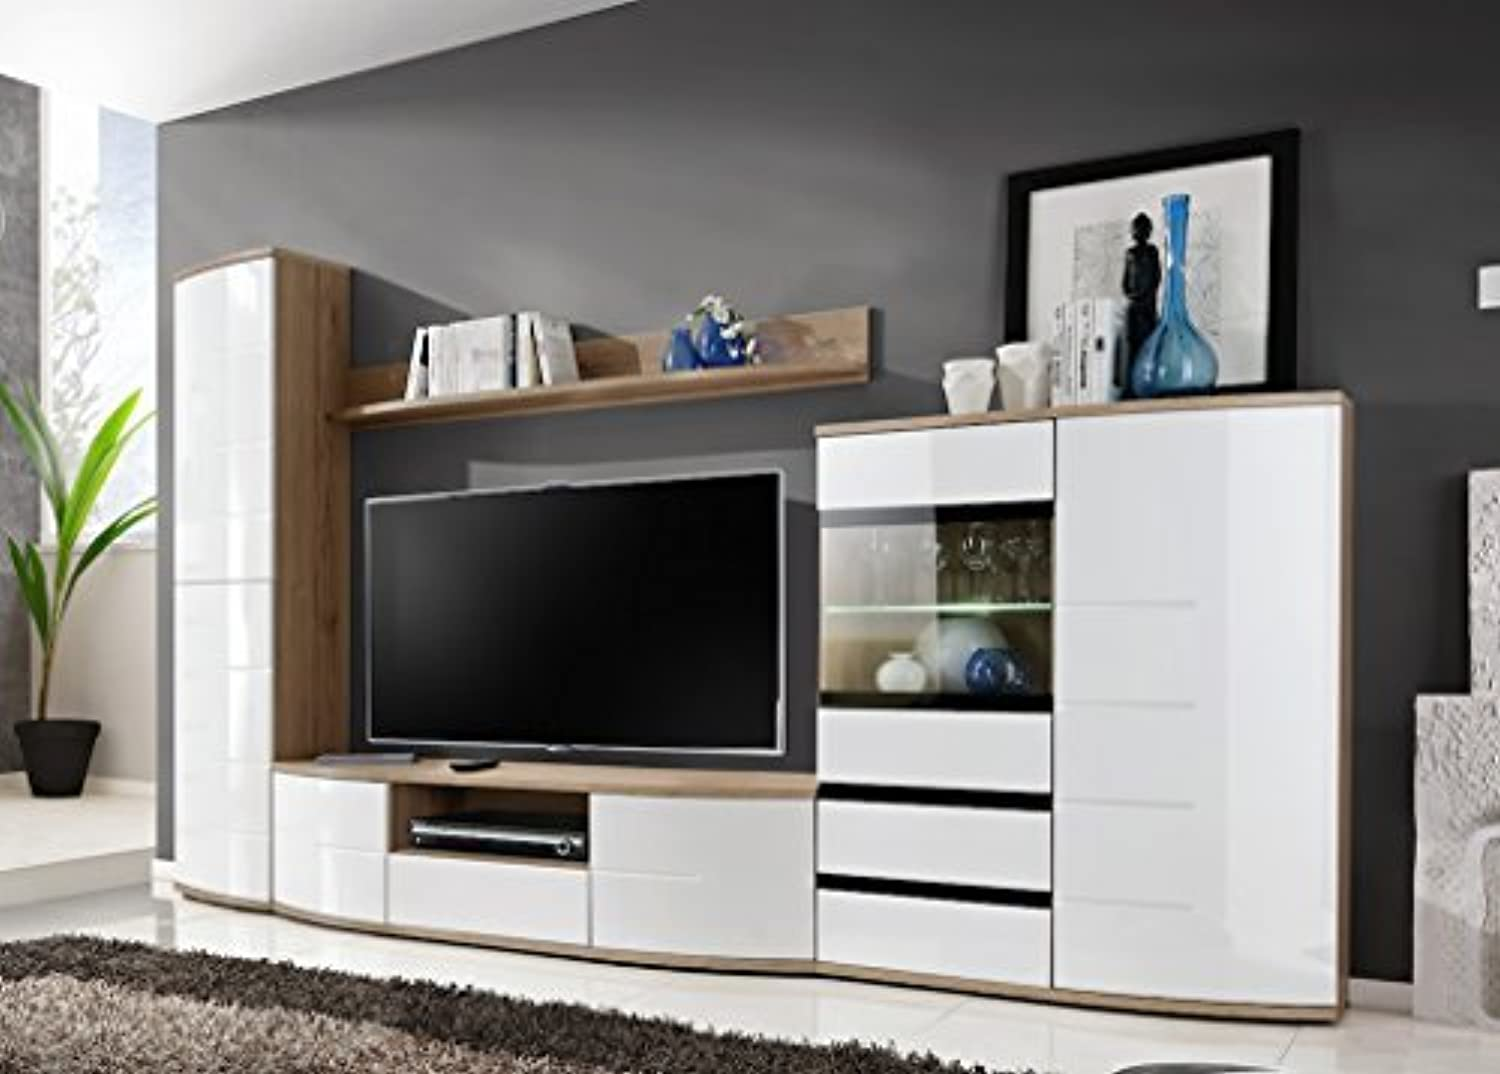 Just Released Bmf Toronto Modern Living Room Wall Unit Chest Of Drawers Tv Stand Cabinets